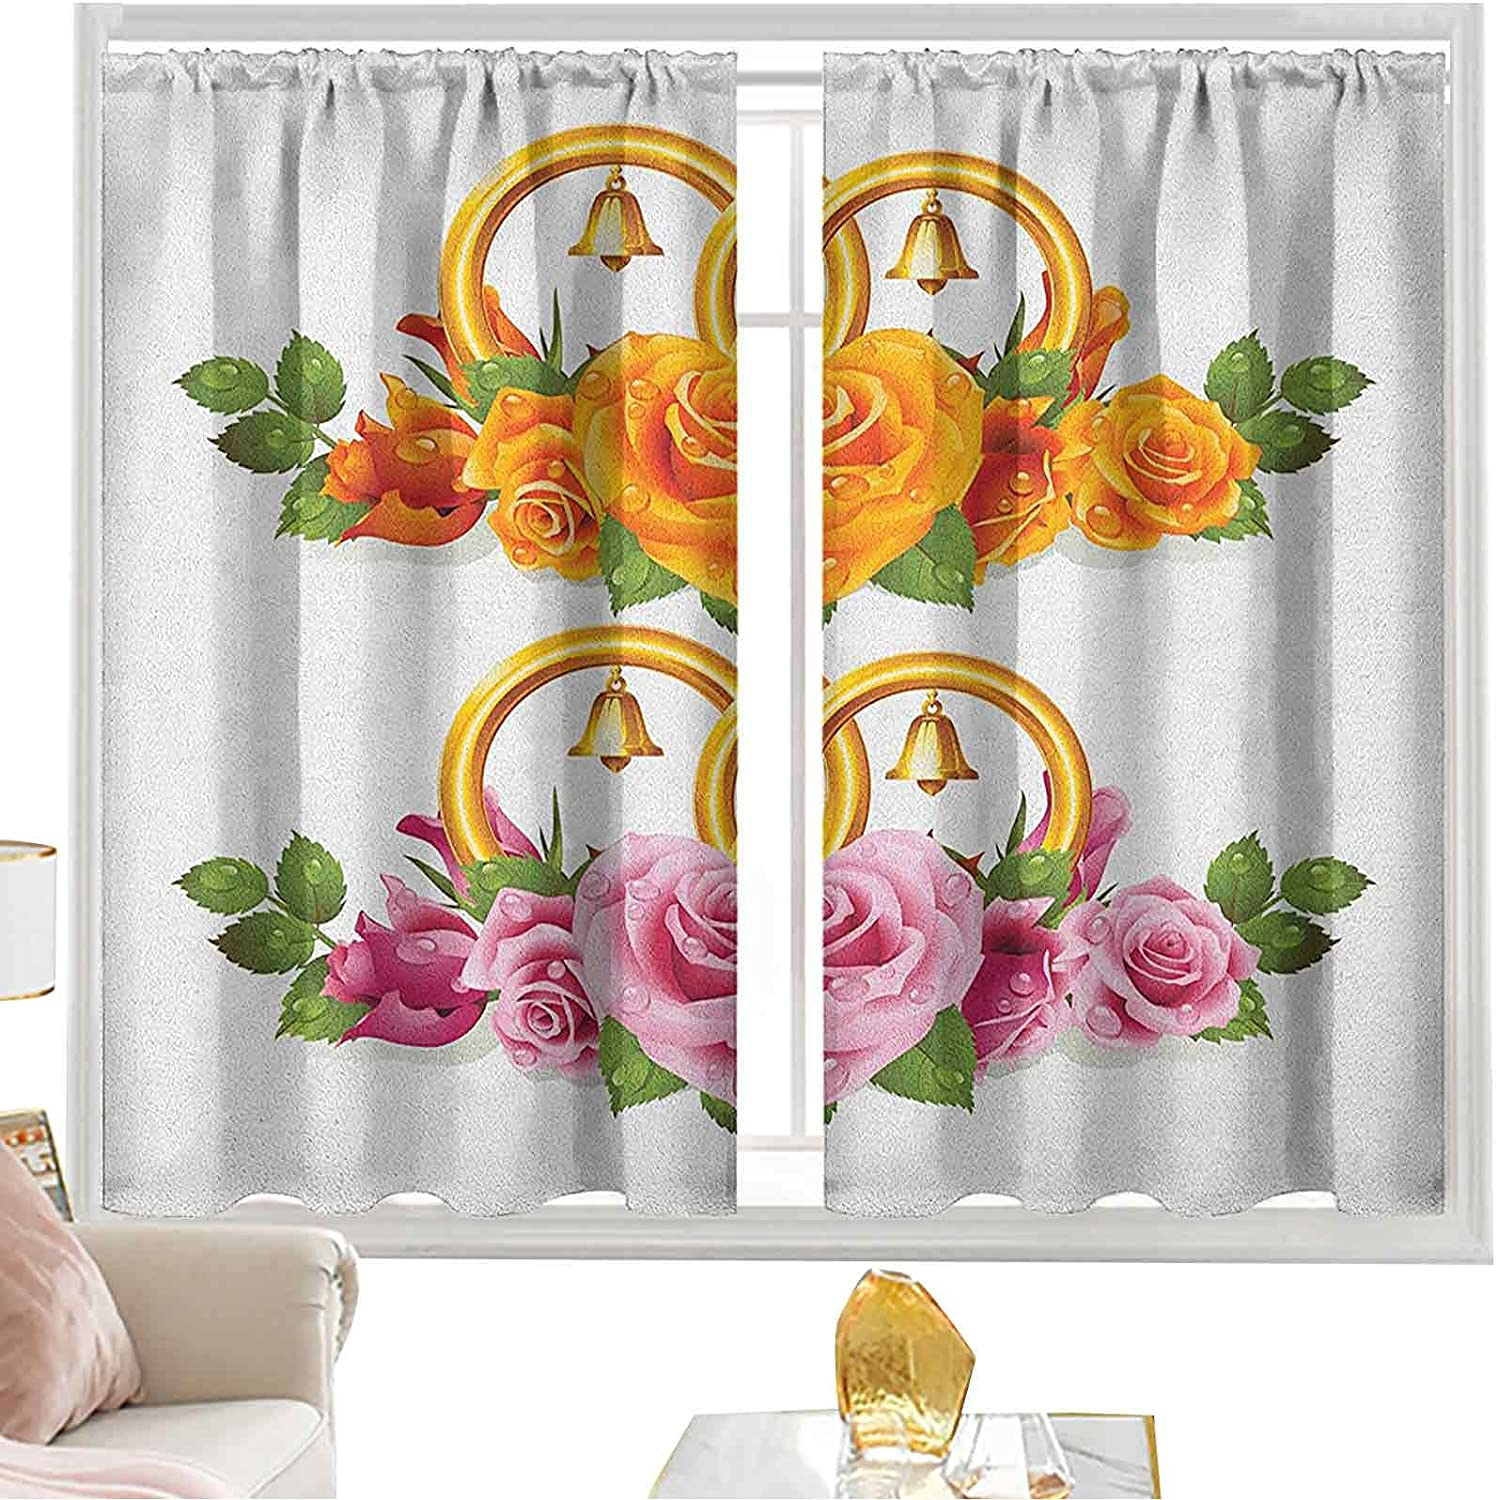 Blackout favorite Curtains Rod Pocket Bunch of with Roses Ranking TOP3 Rings and Bell